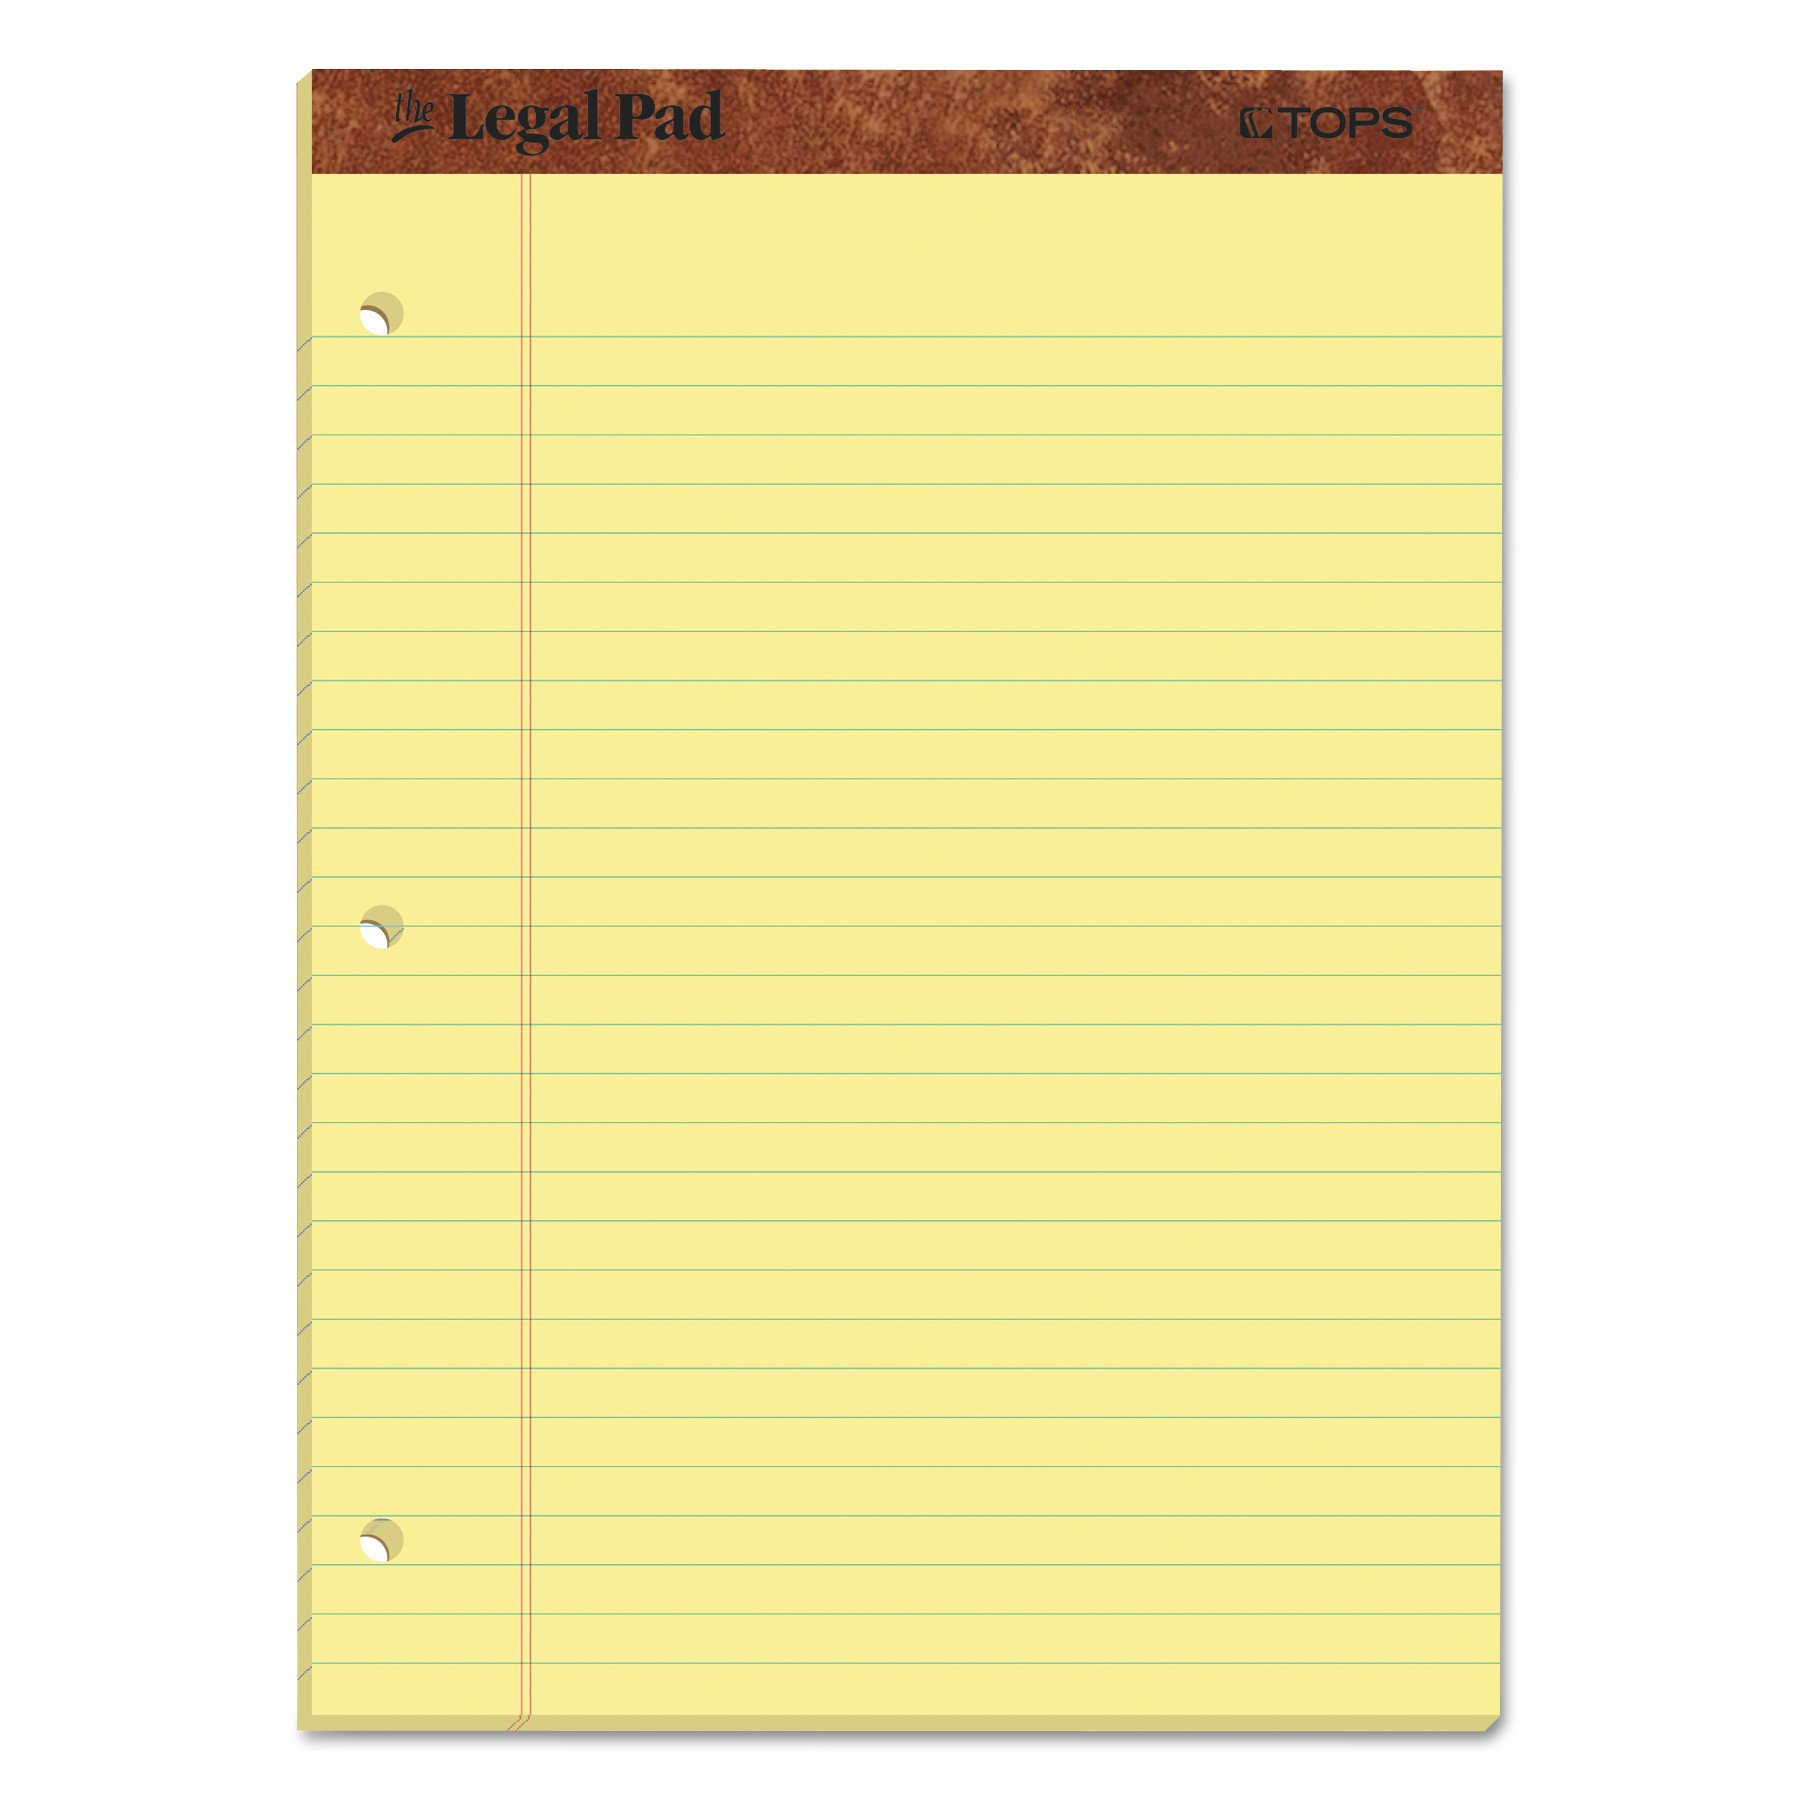 TOPS The Legal Pad Writing Pads, 8-1/2'' x 11-3/4'', Canary Paper, Legal Rule, 50 Sheets, 12 Pack (75351)